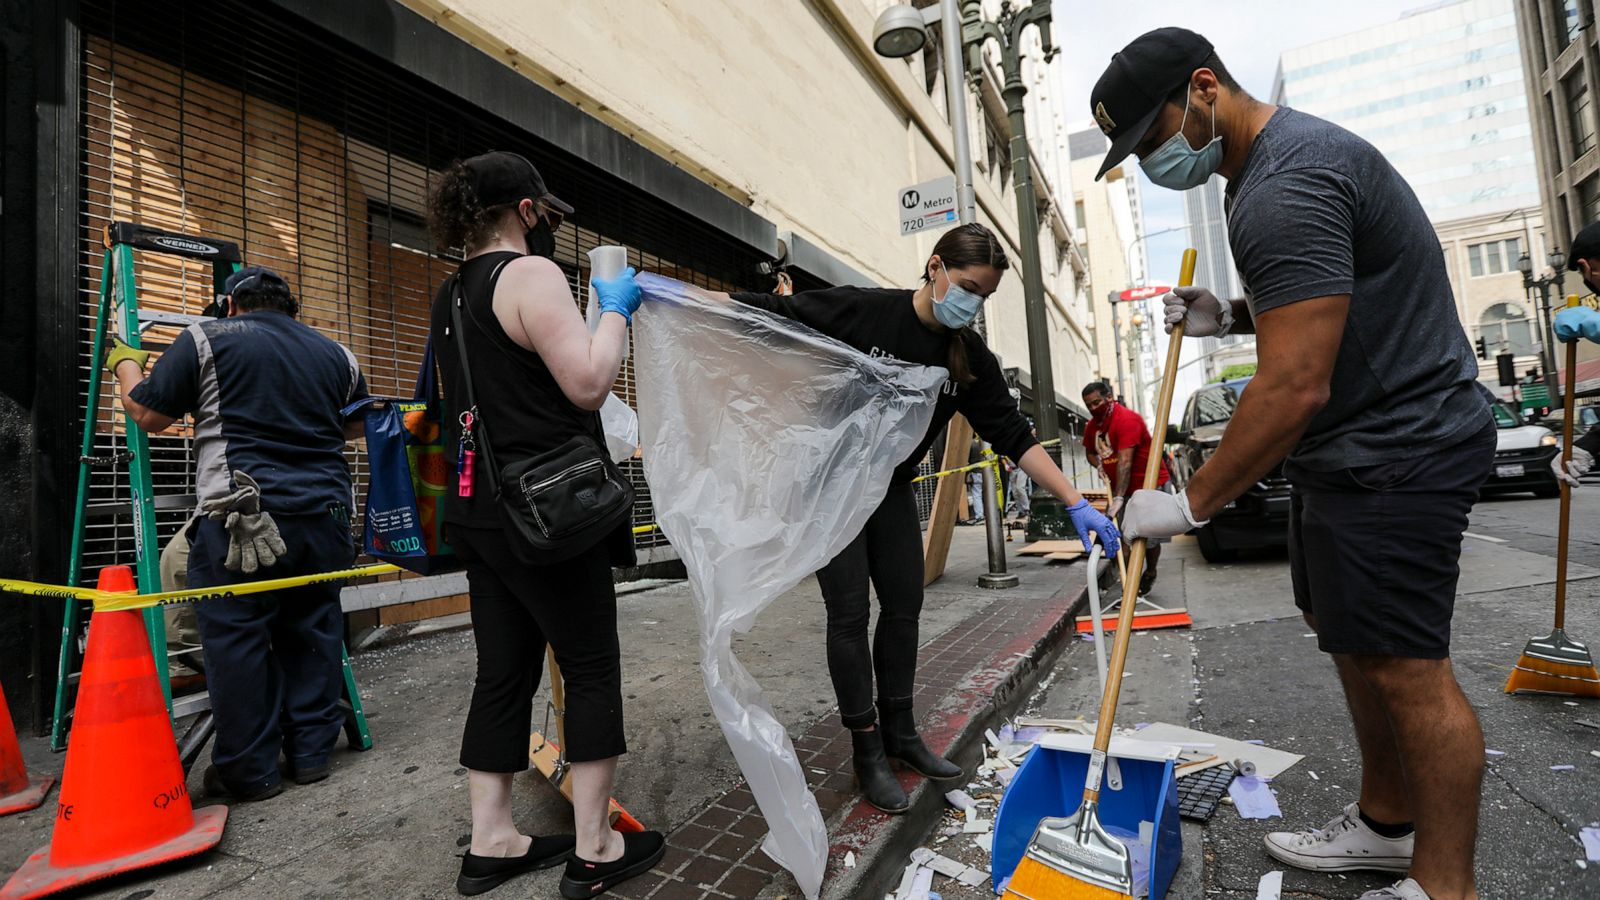 Volunteers across the US clean up glass, graffiti in wake of ...